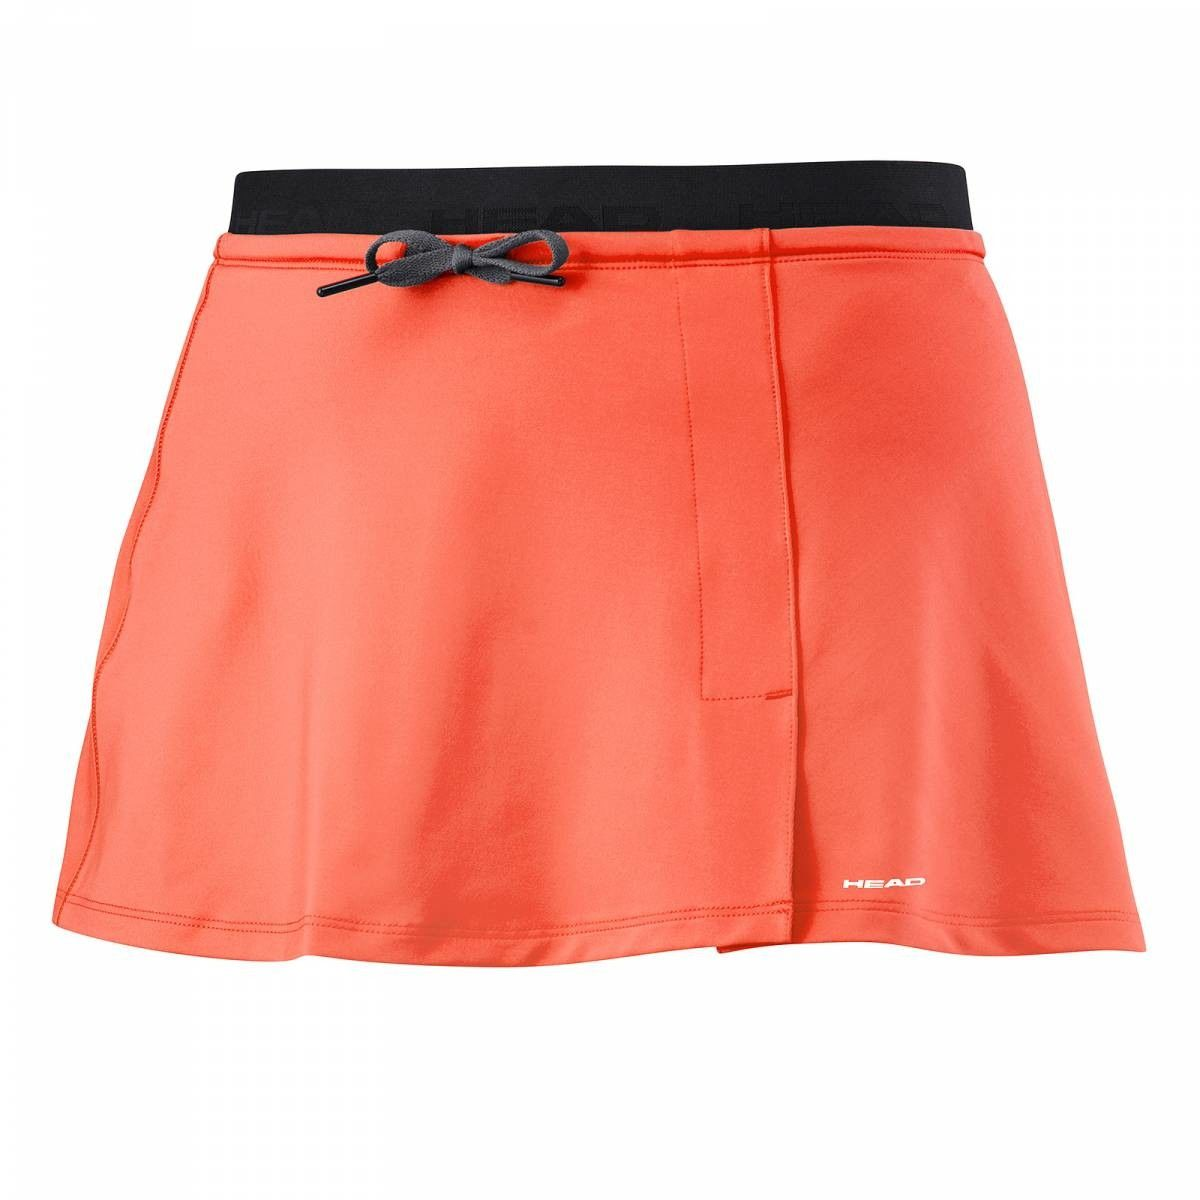 Head Vision Skirt W - coral 814407-CO